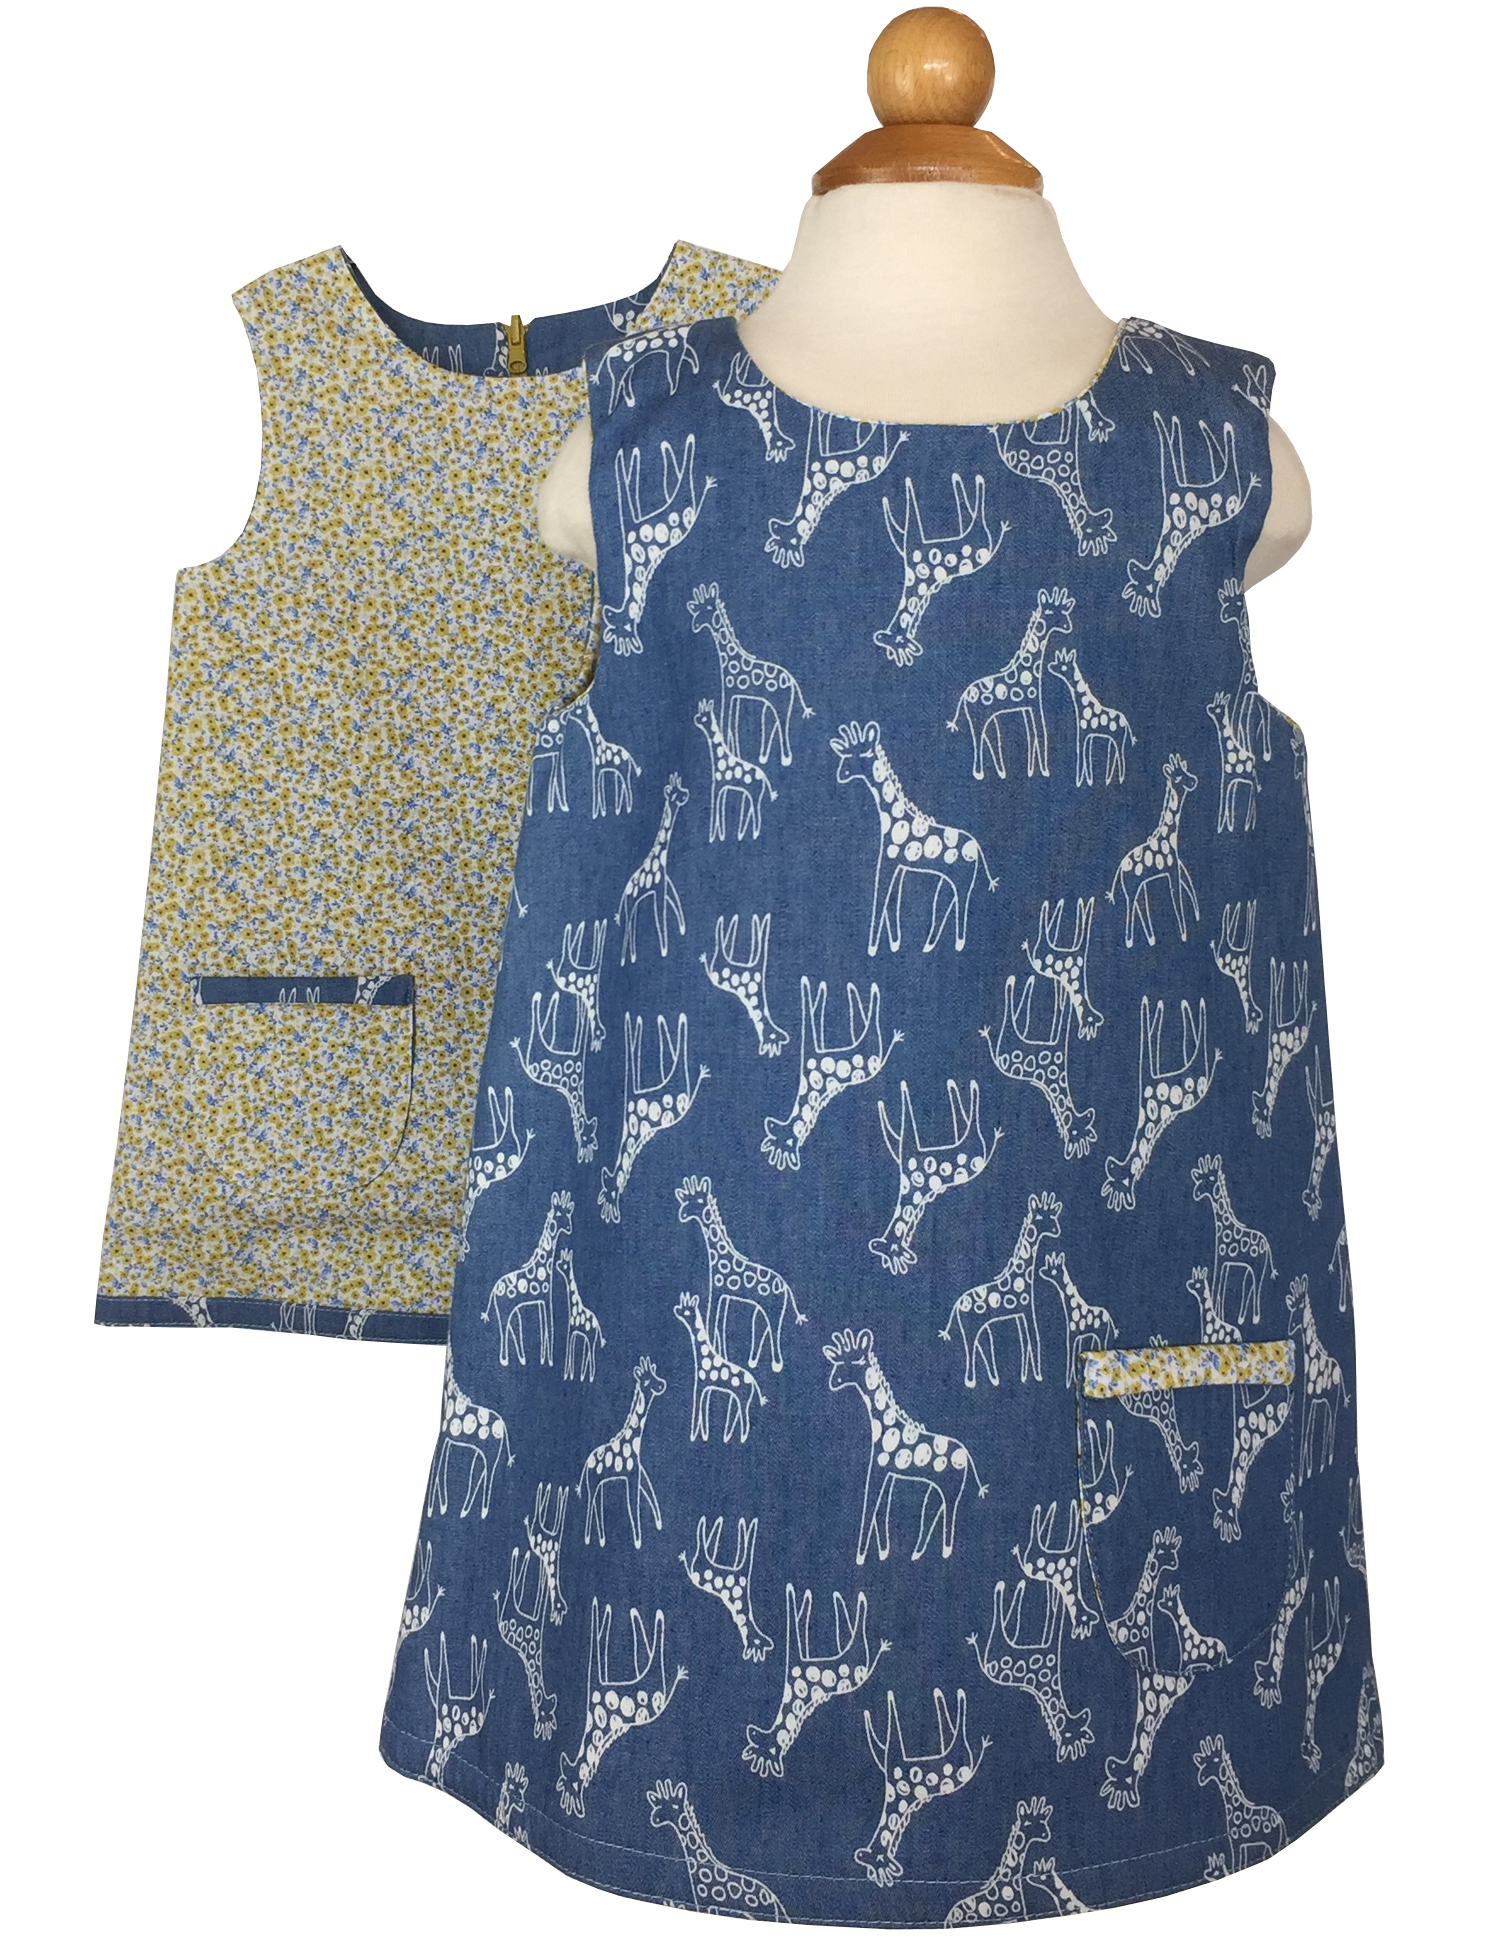 Reversible Giraffe Dress